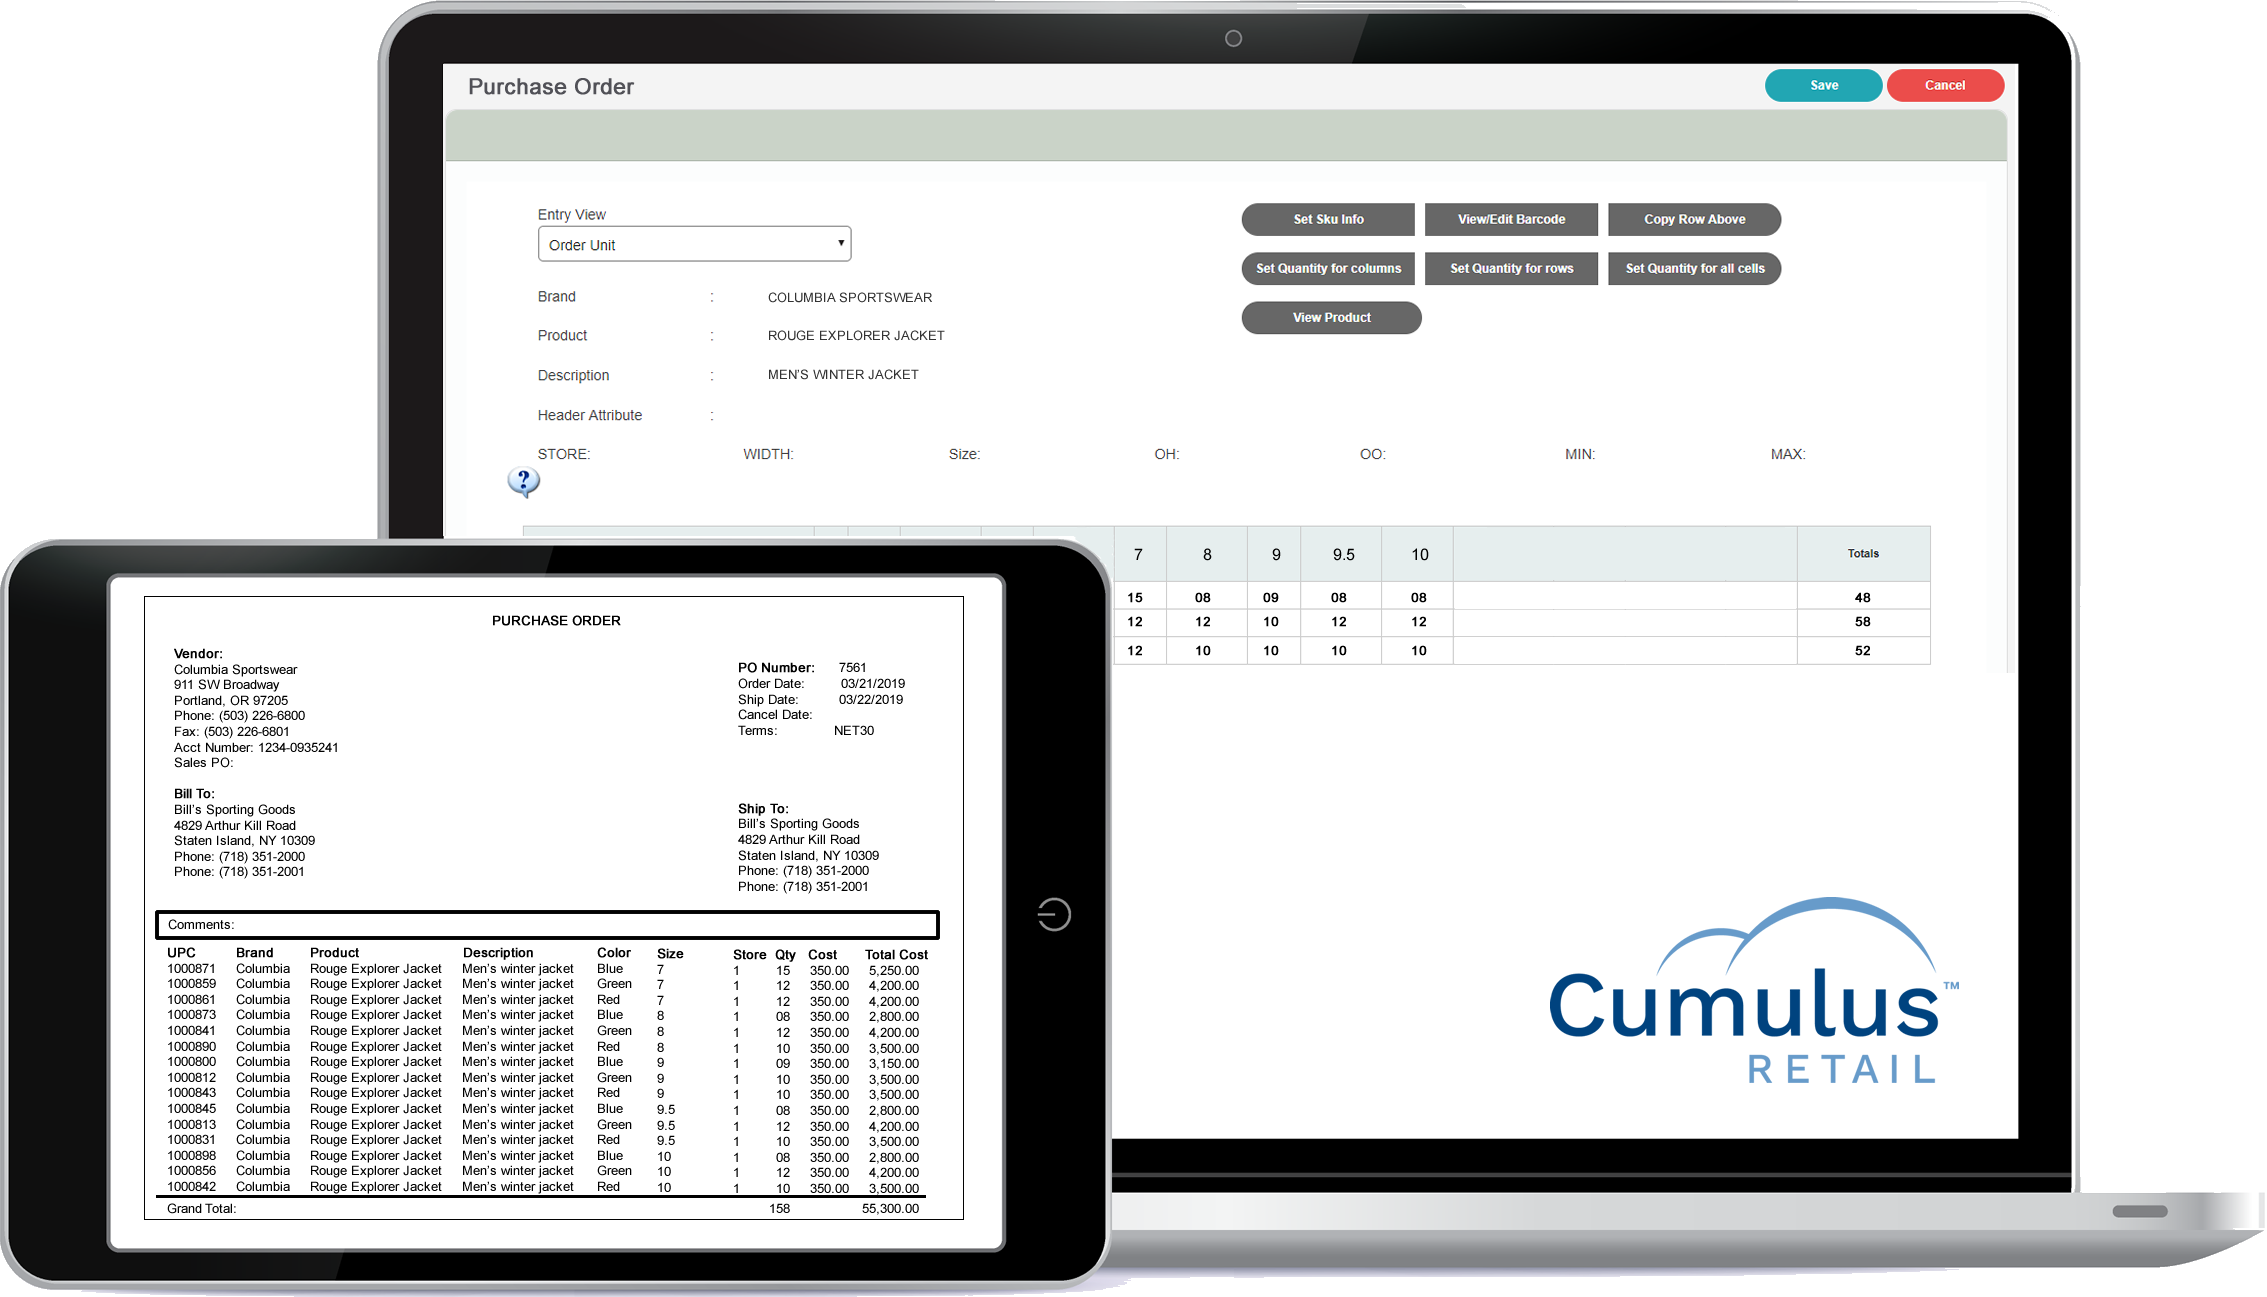 Cumulus integrates with many vendors/distributors for catalog import, automated ordering, online vendor feeds & even drop shipping.